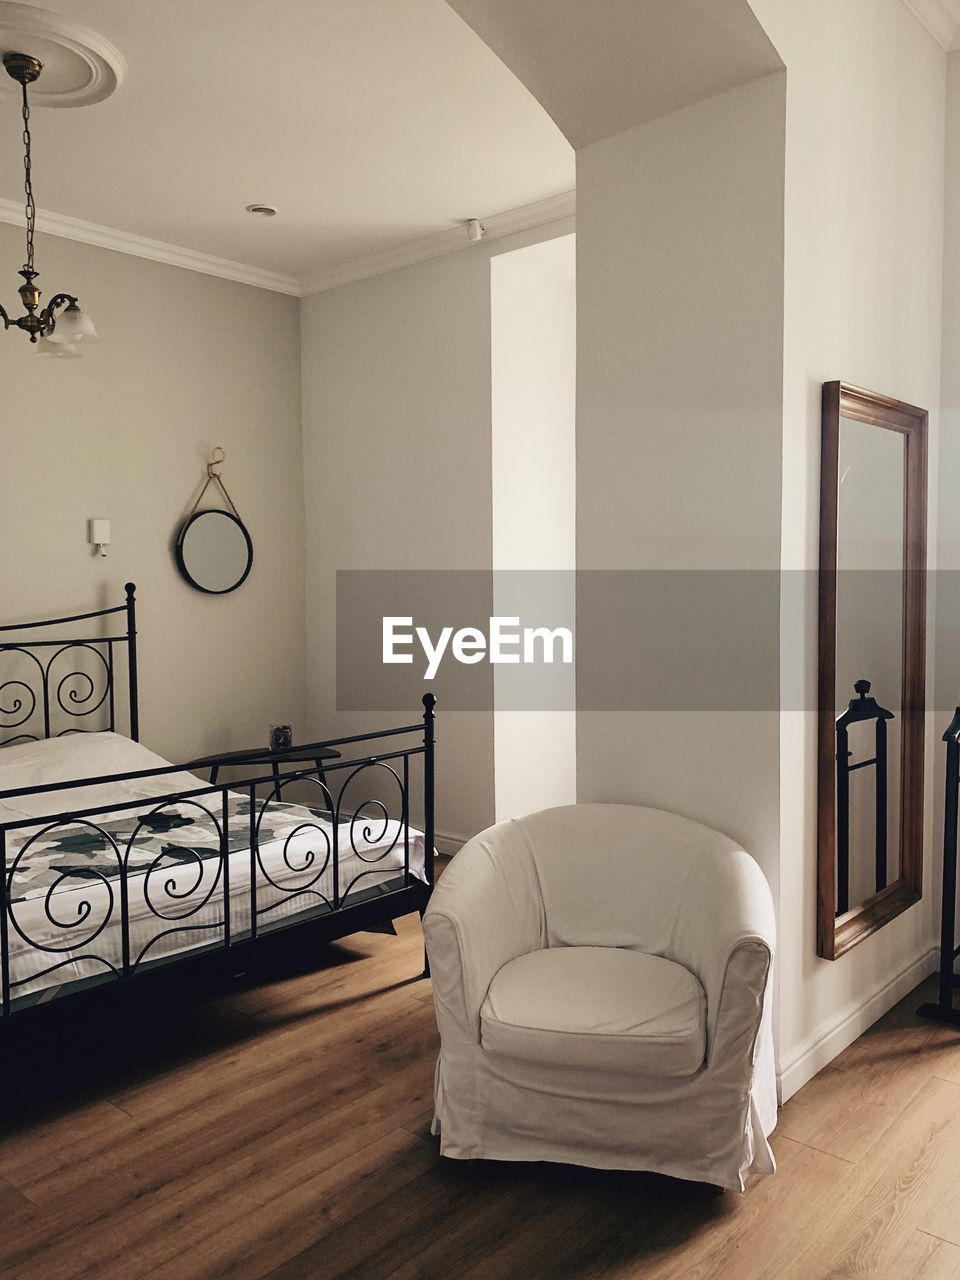 VIEW OF EMPTY ROOM WITH HOME